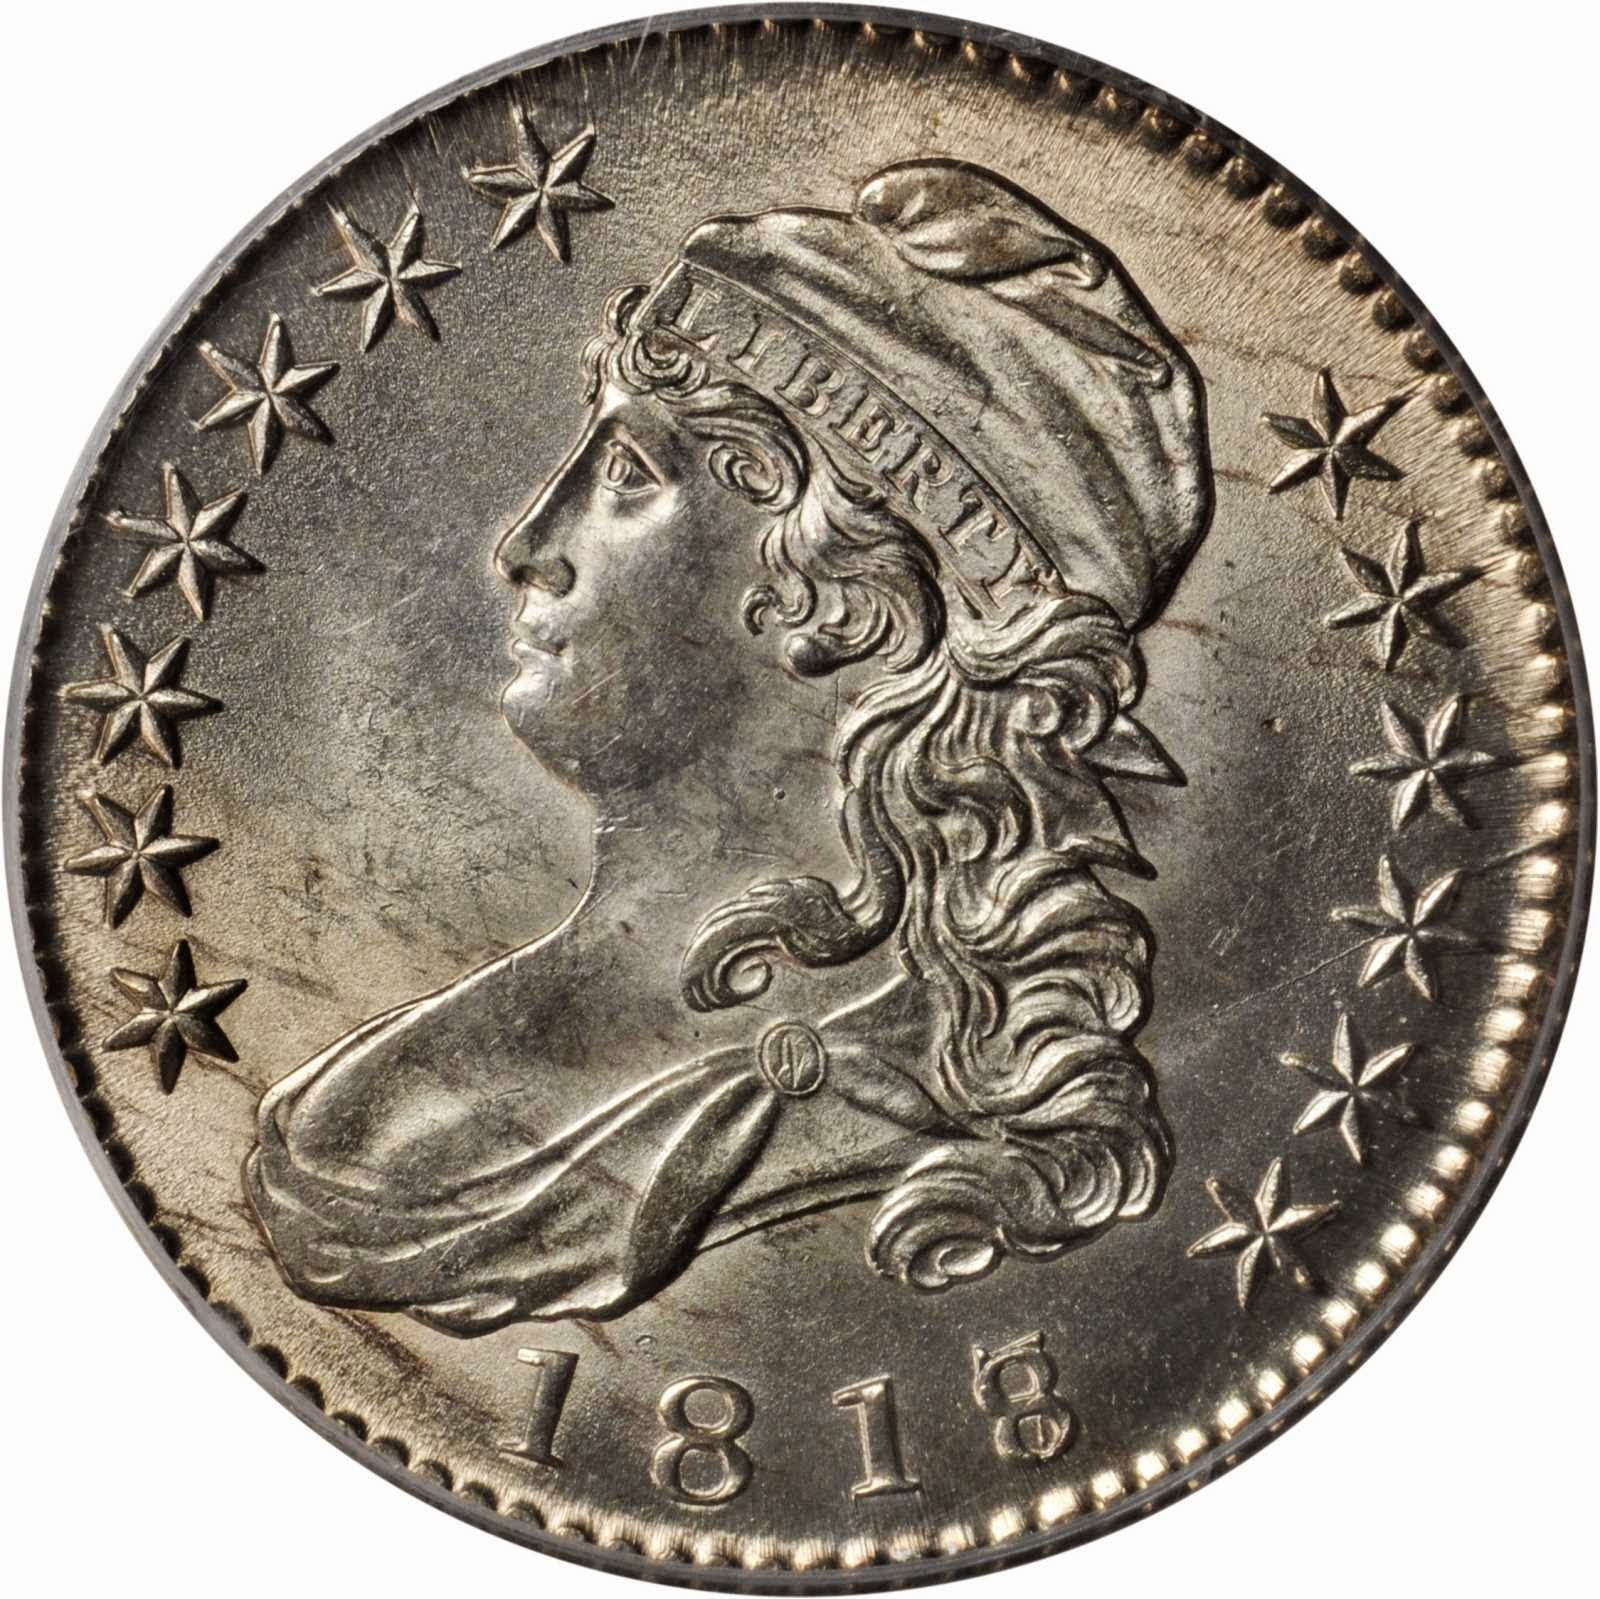 US Coins 1818/7 Capped Bust Half Dollar